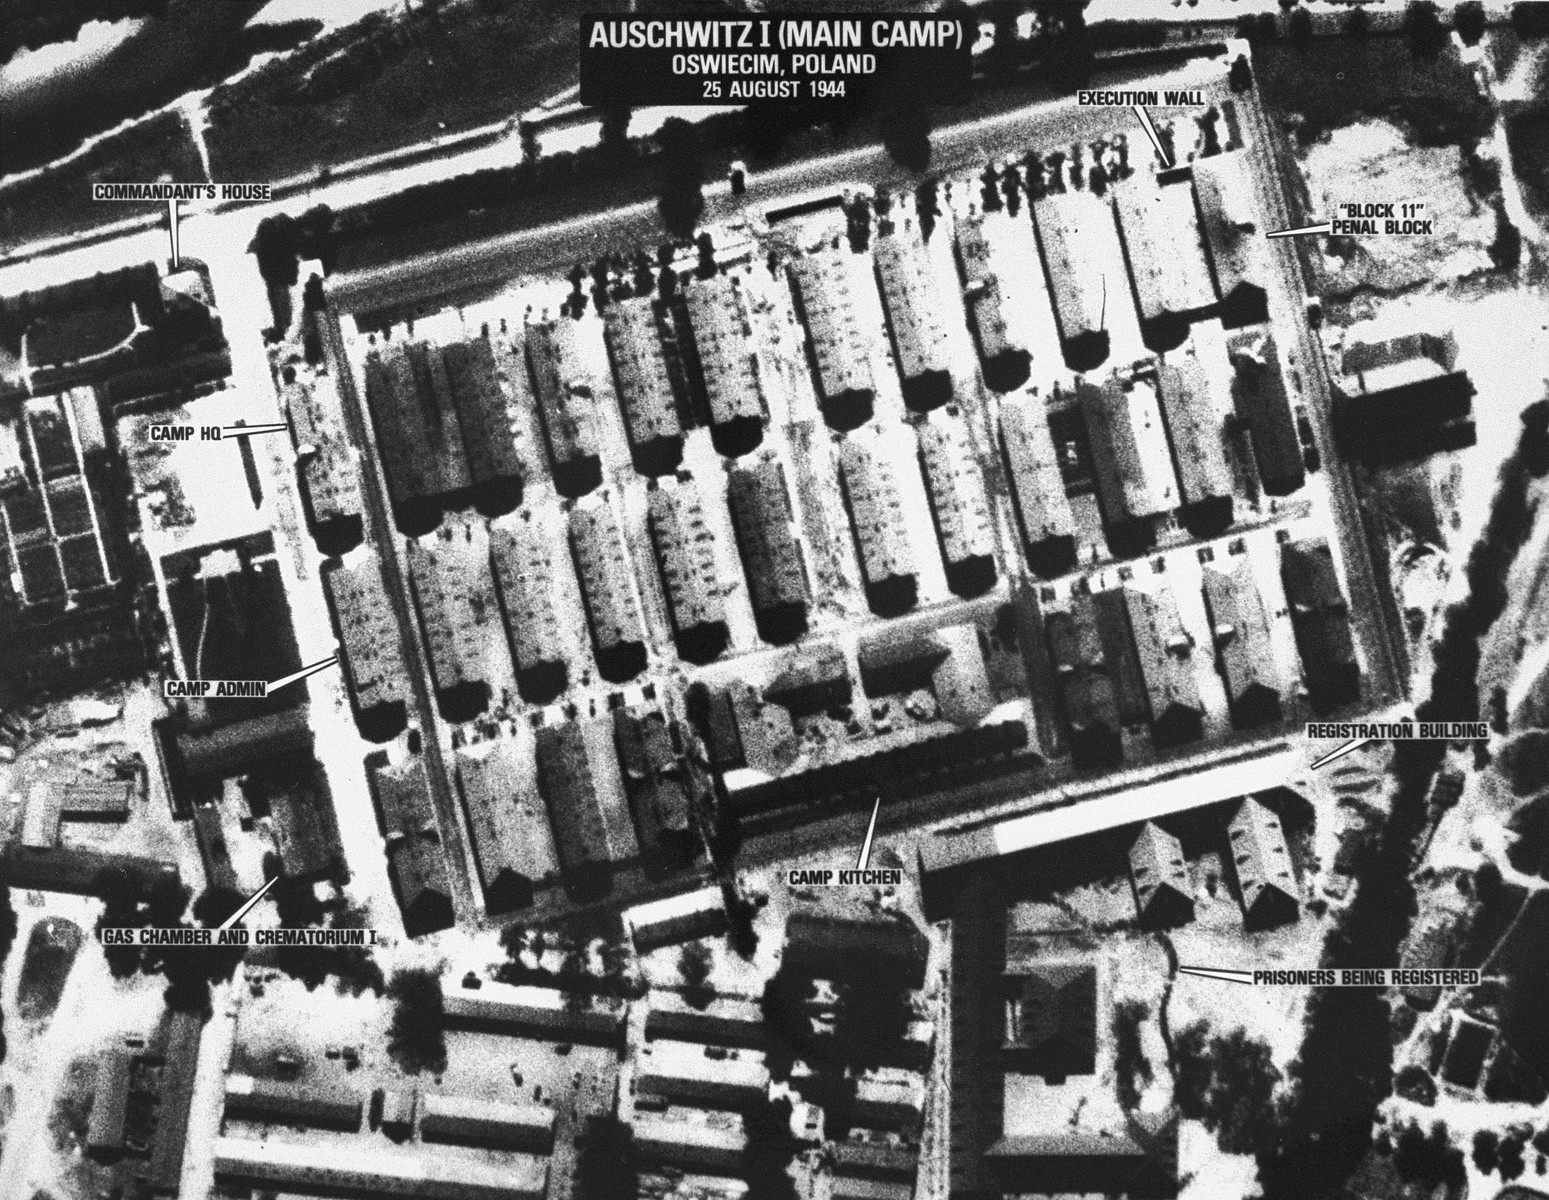 An aerial reconnaissance photograph  of the Auschwitz concentration camp showing Auschwitz 1 Mission.